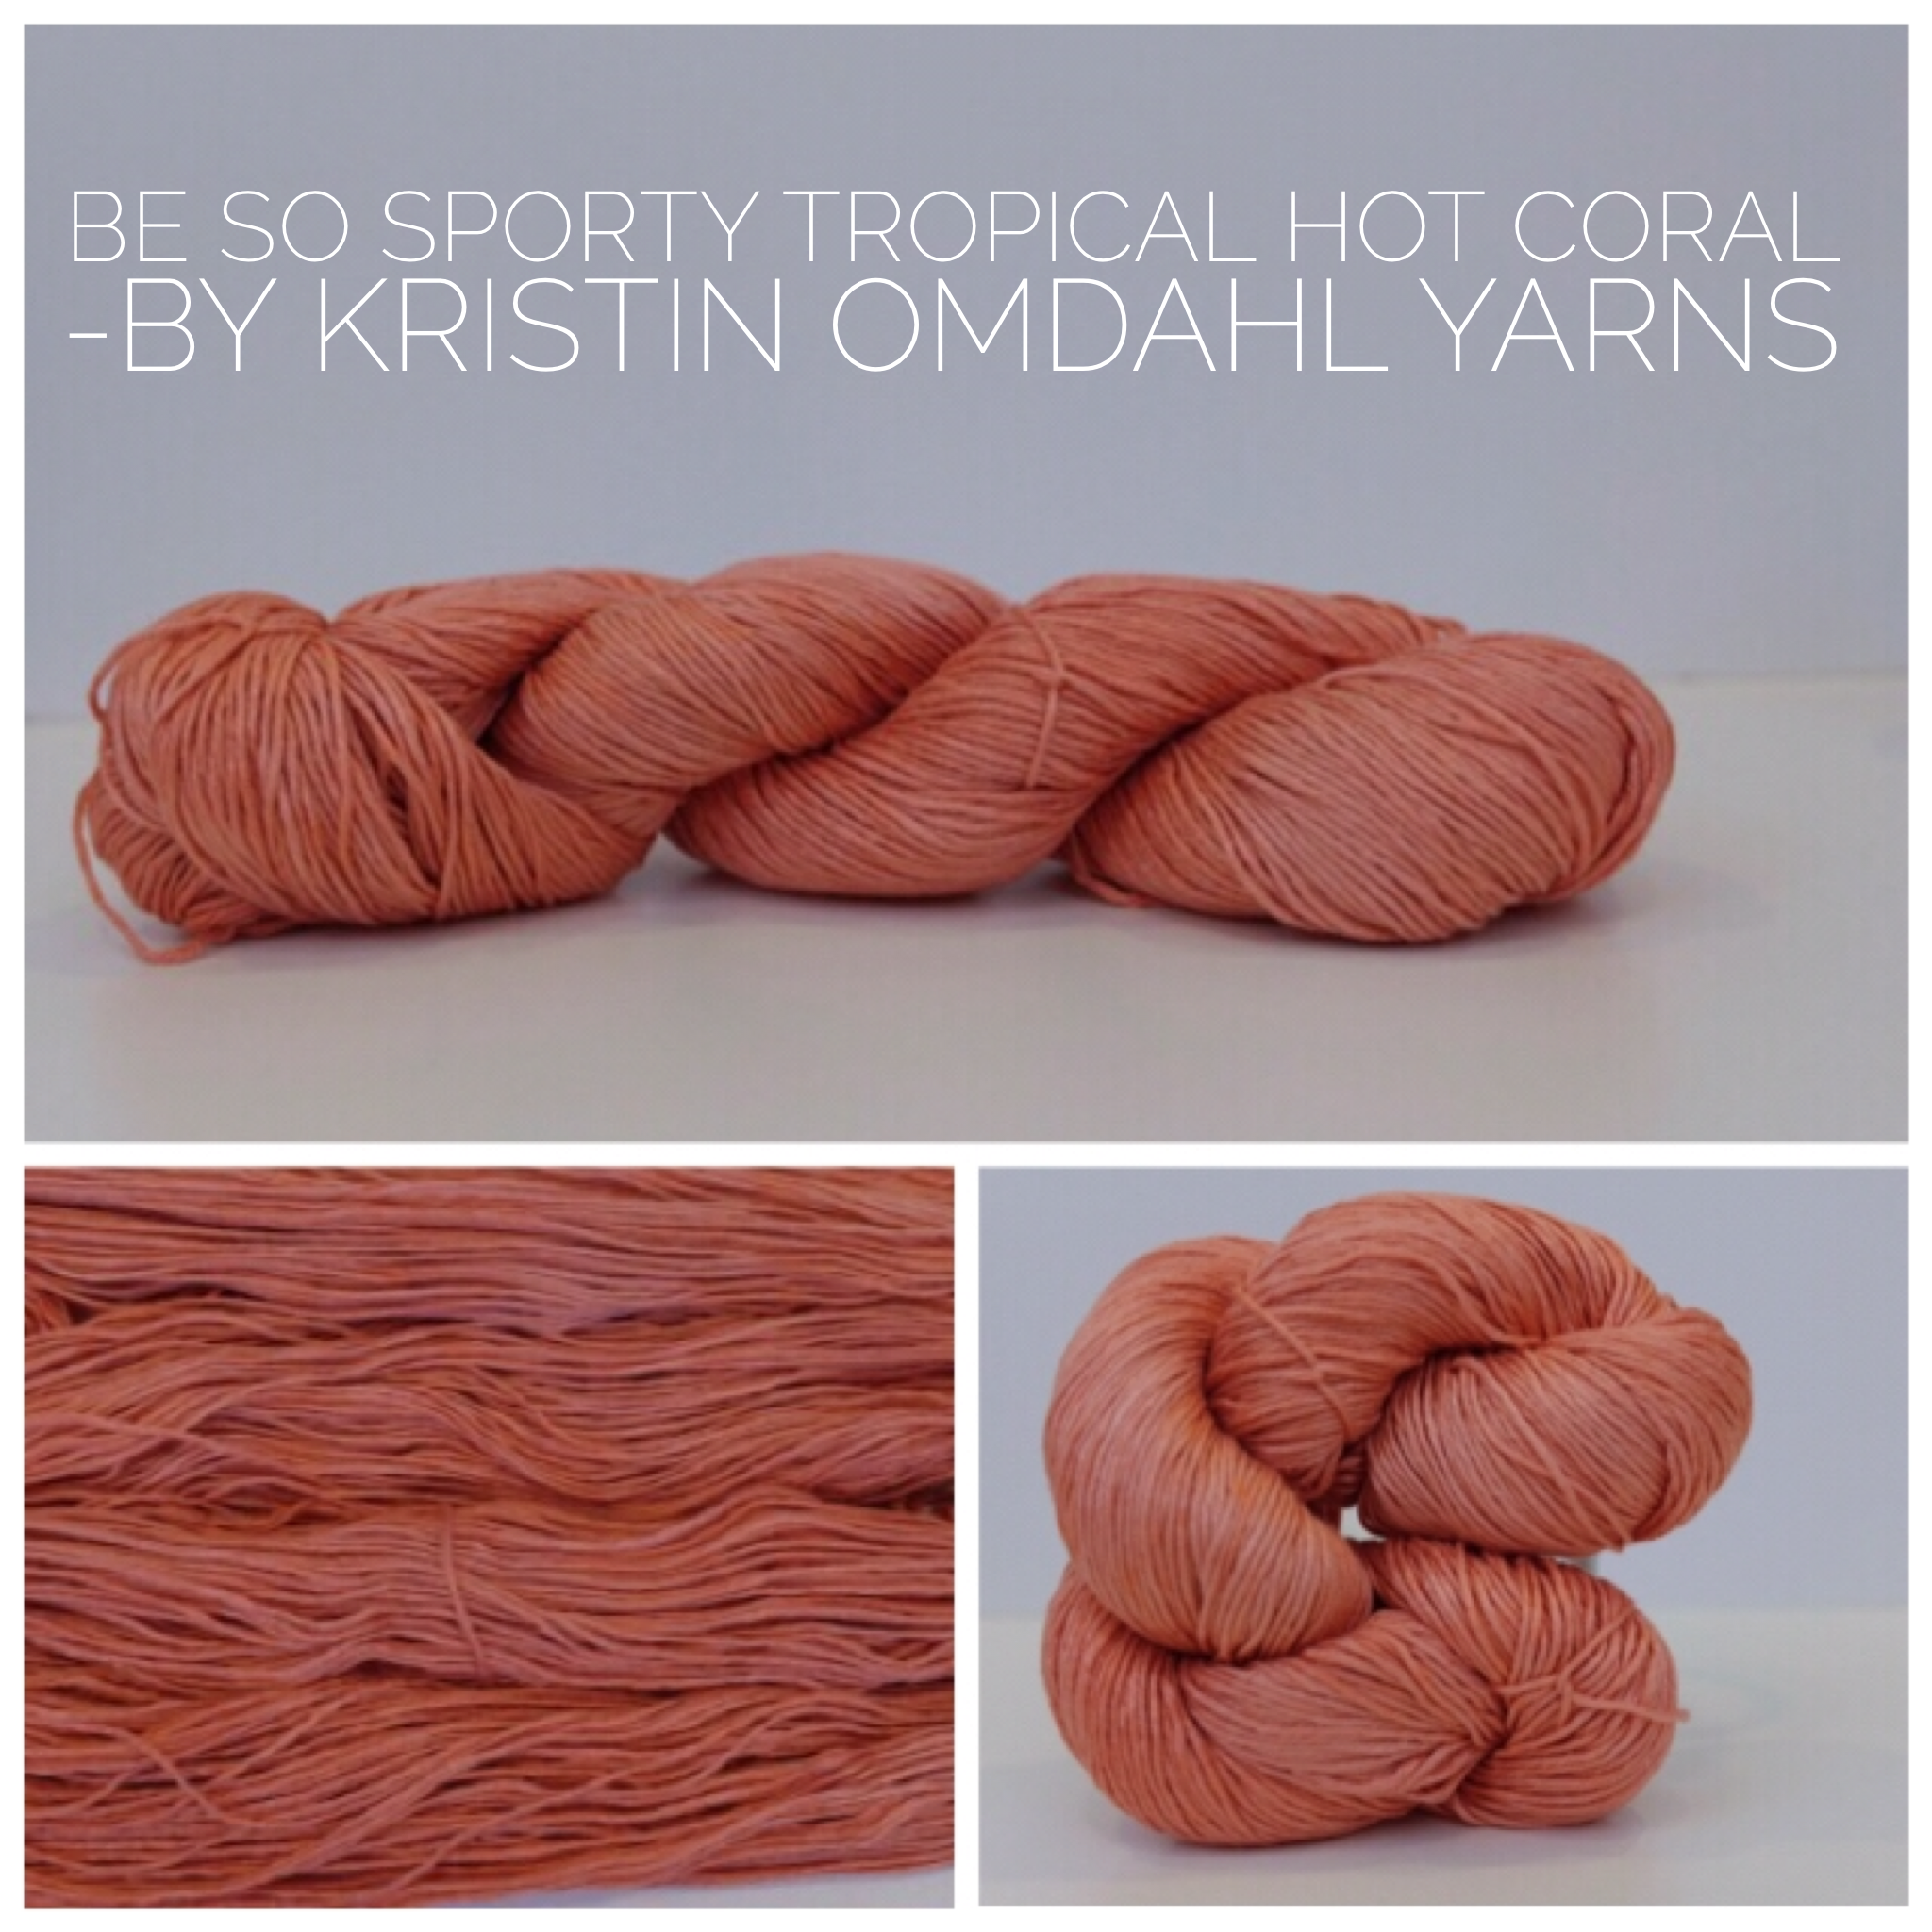 BSS tropical hot coral collage.PNG